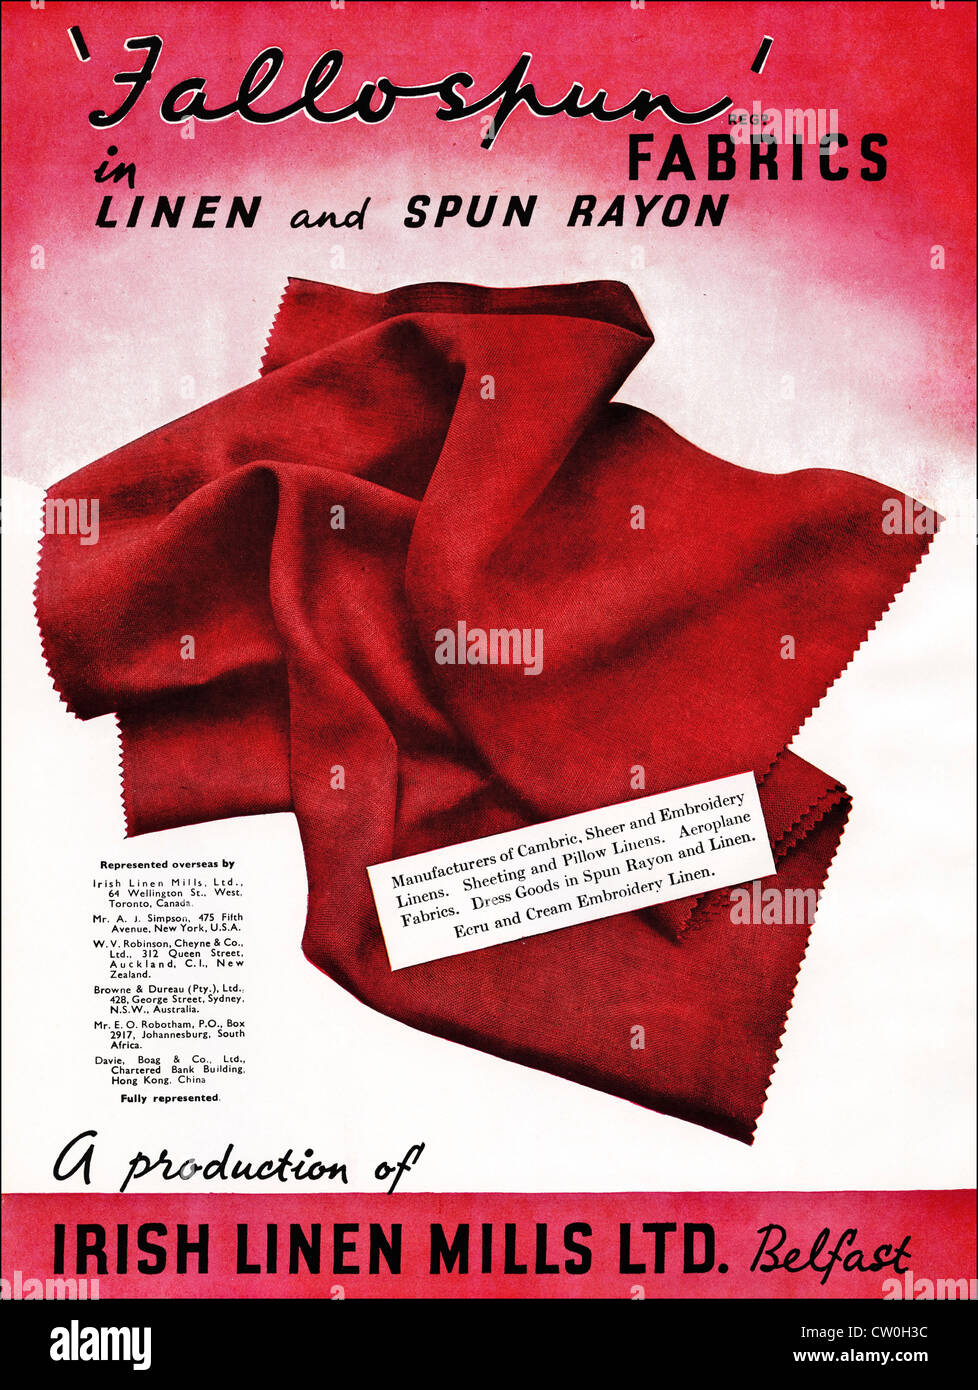 Vintage print advertisement from textile manufacturers